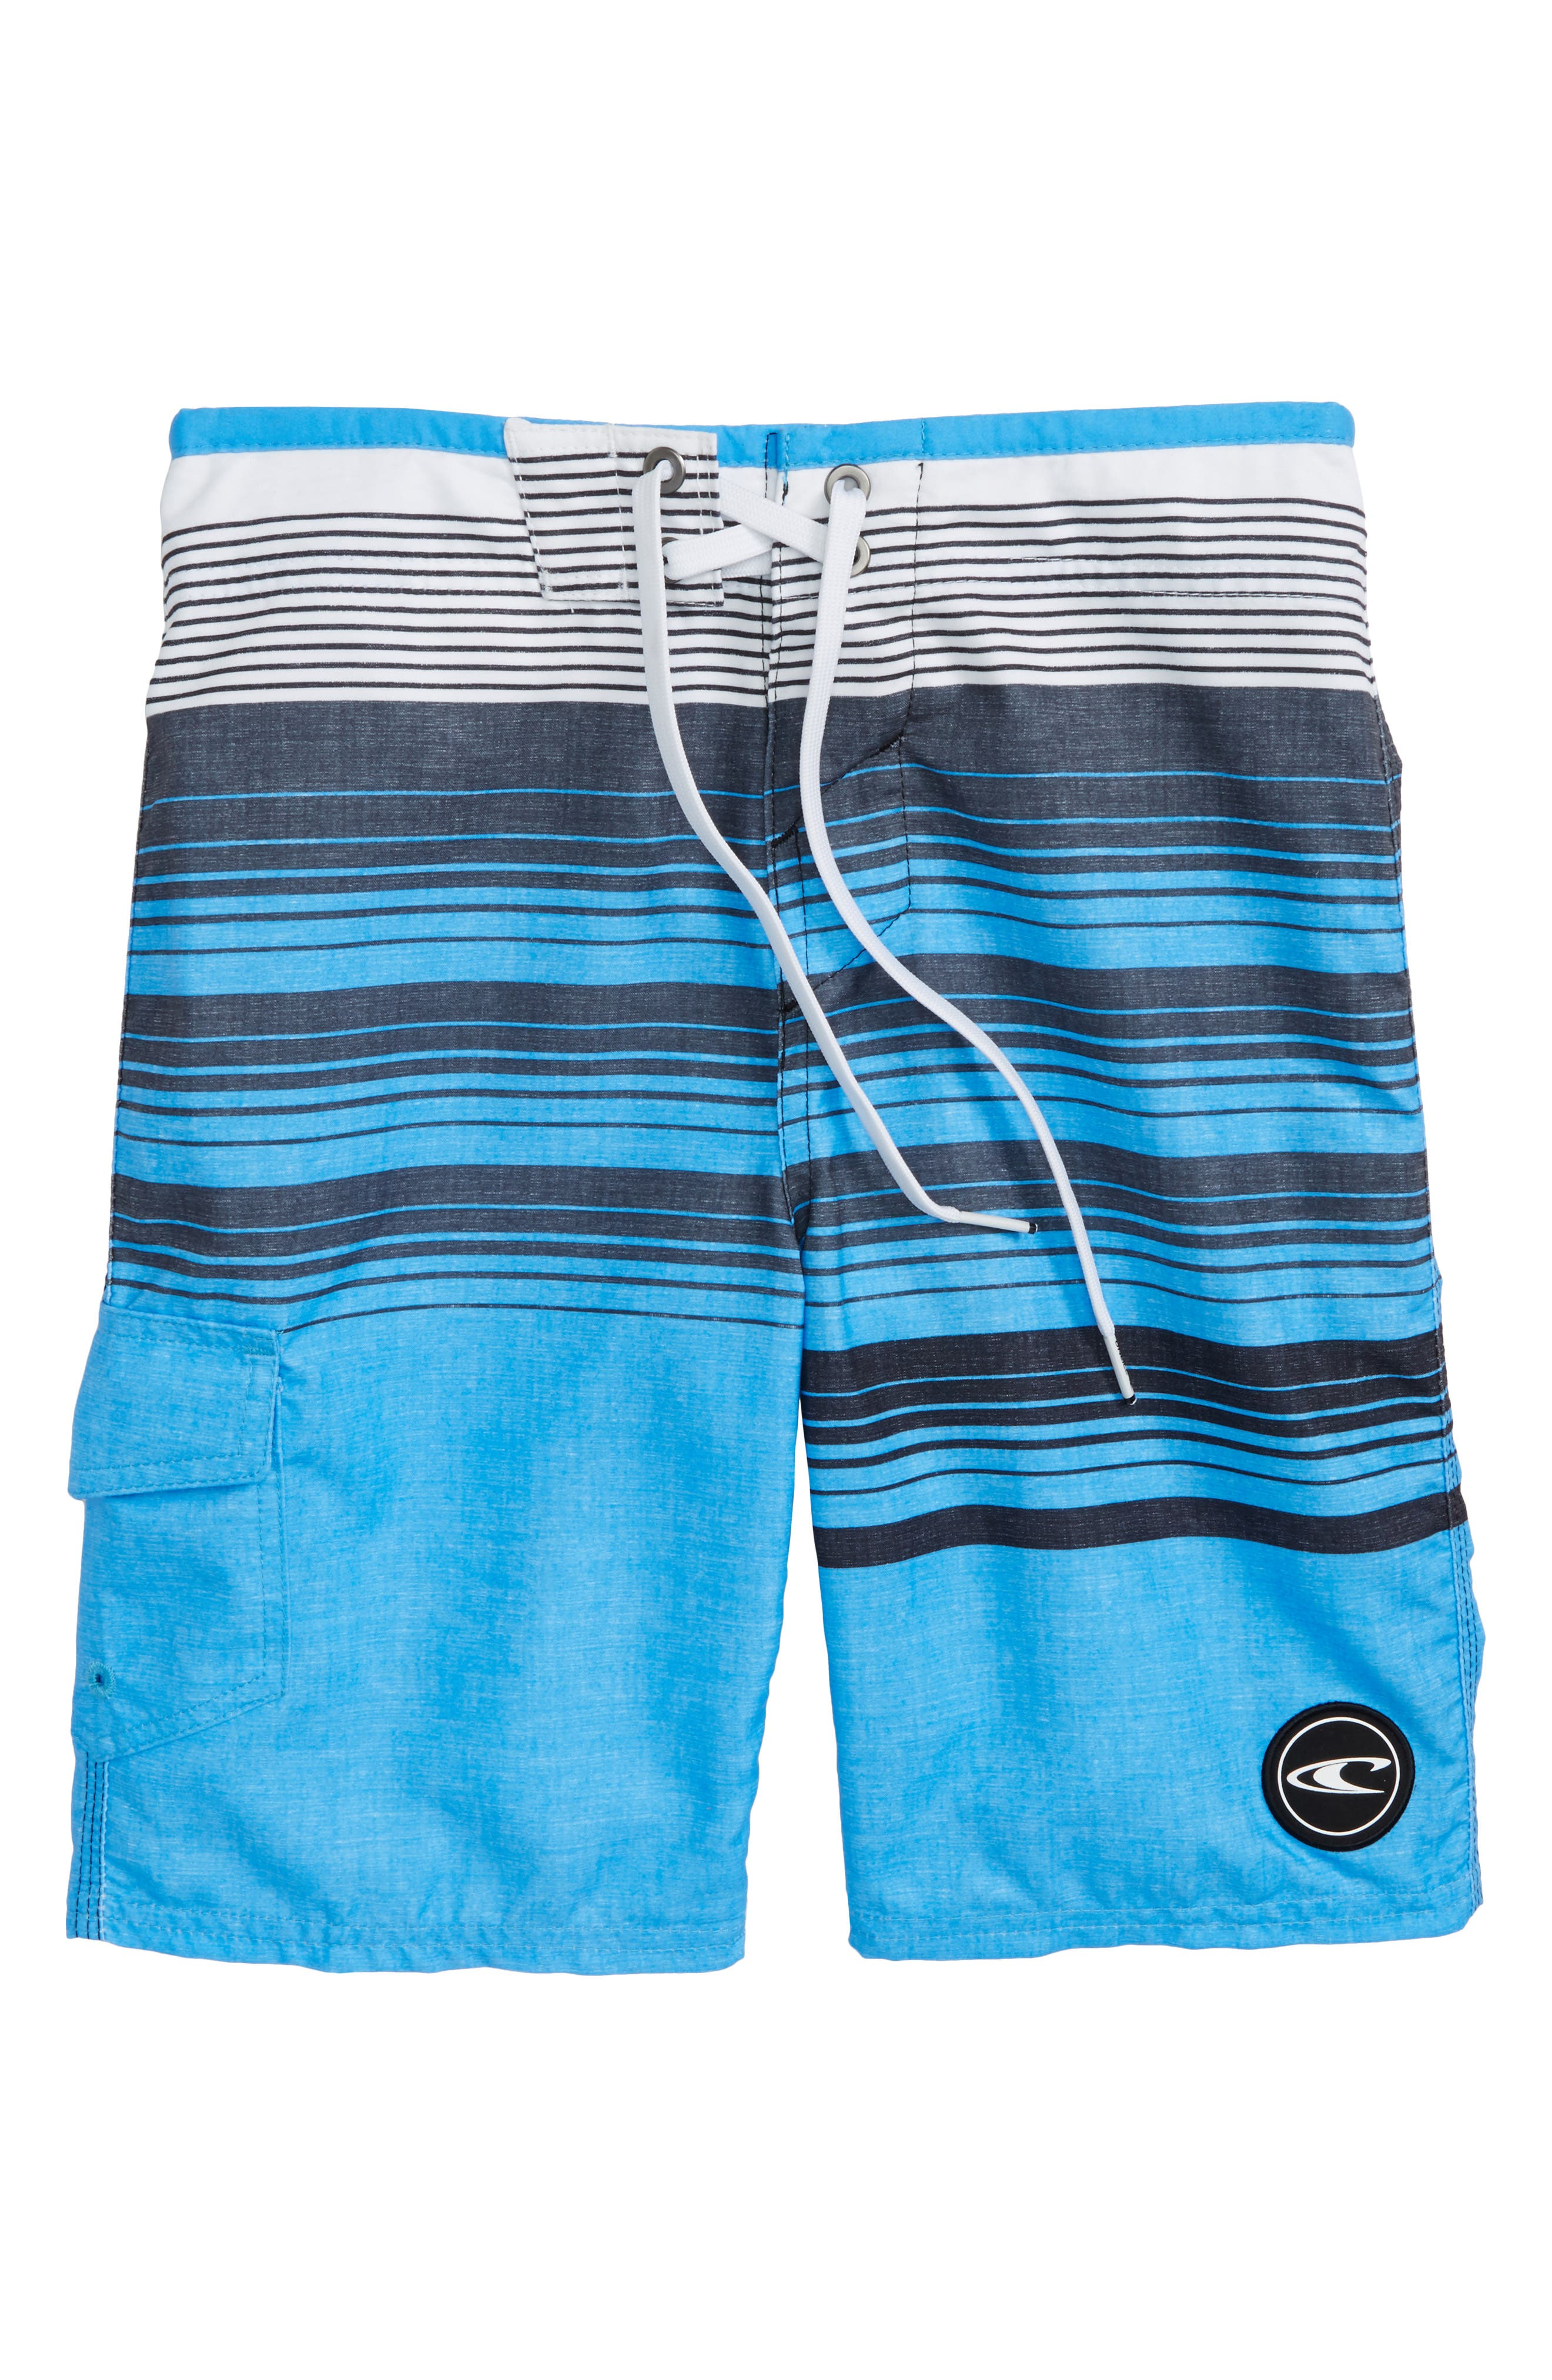 Bennett Board Shorts,                         Main,                         color, Blue